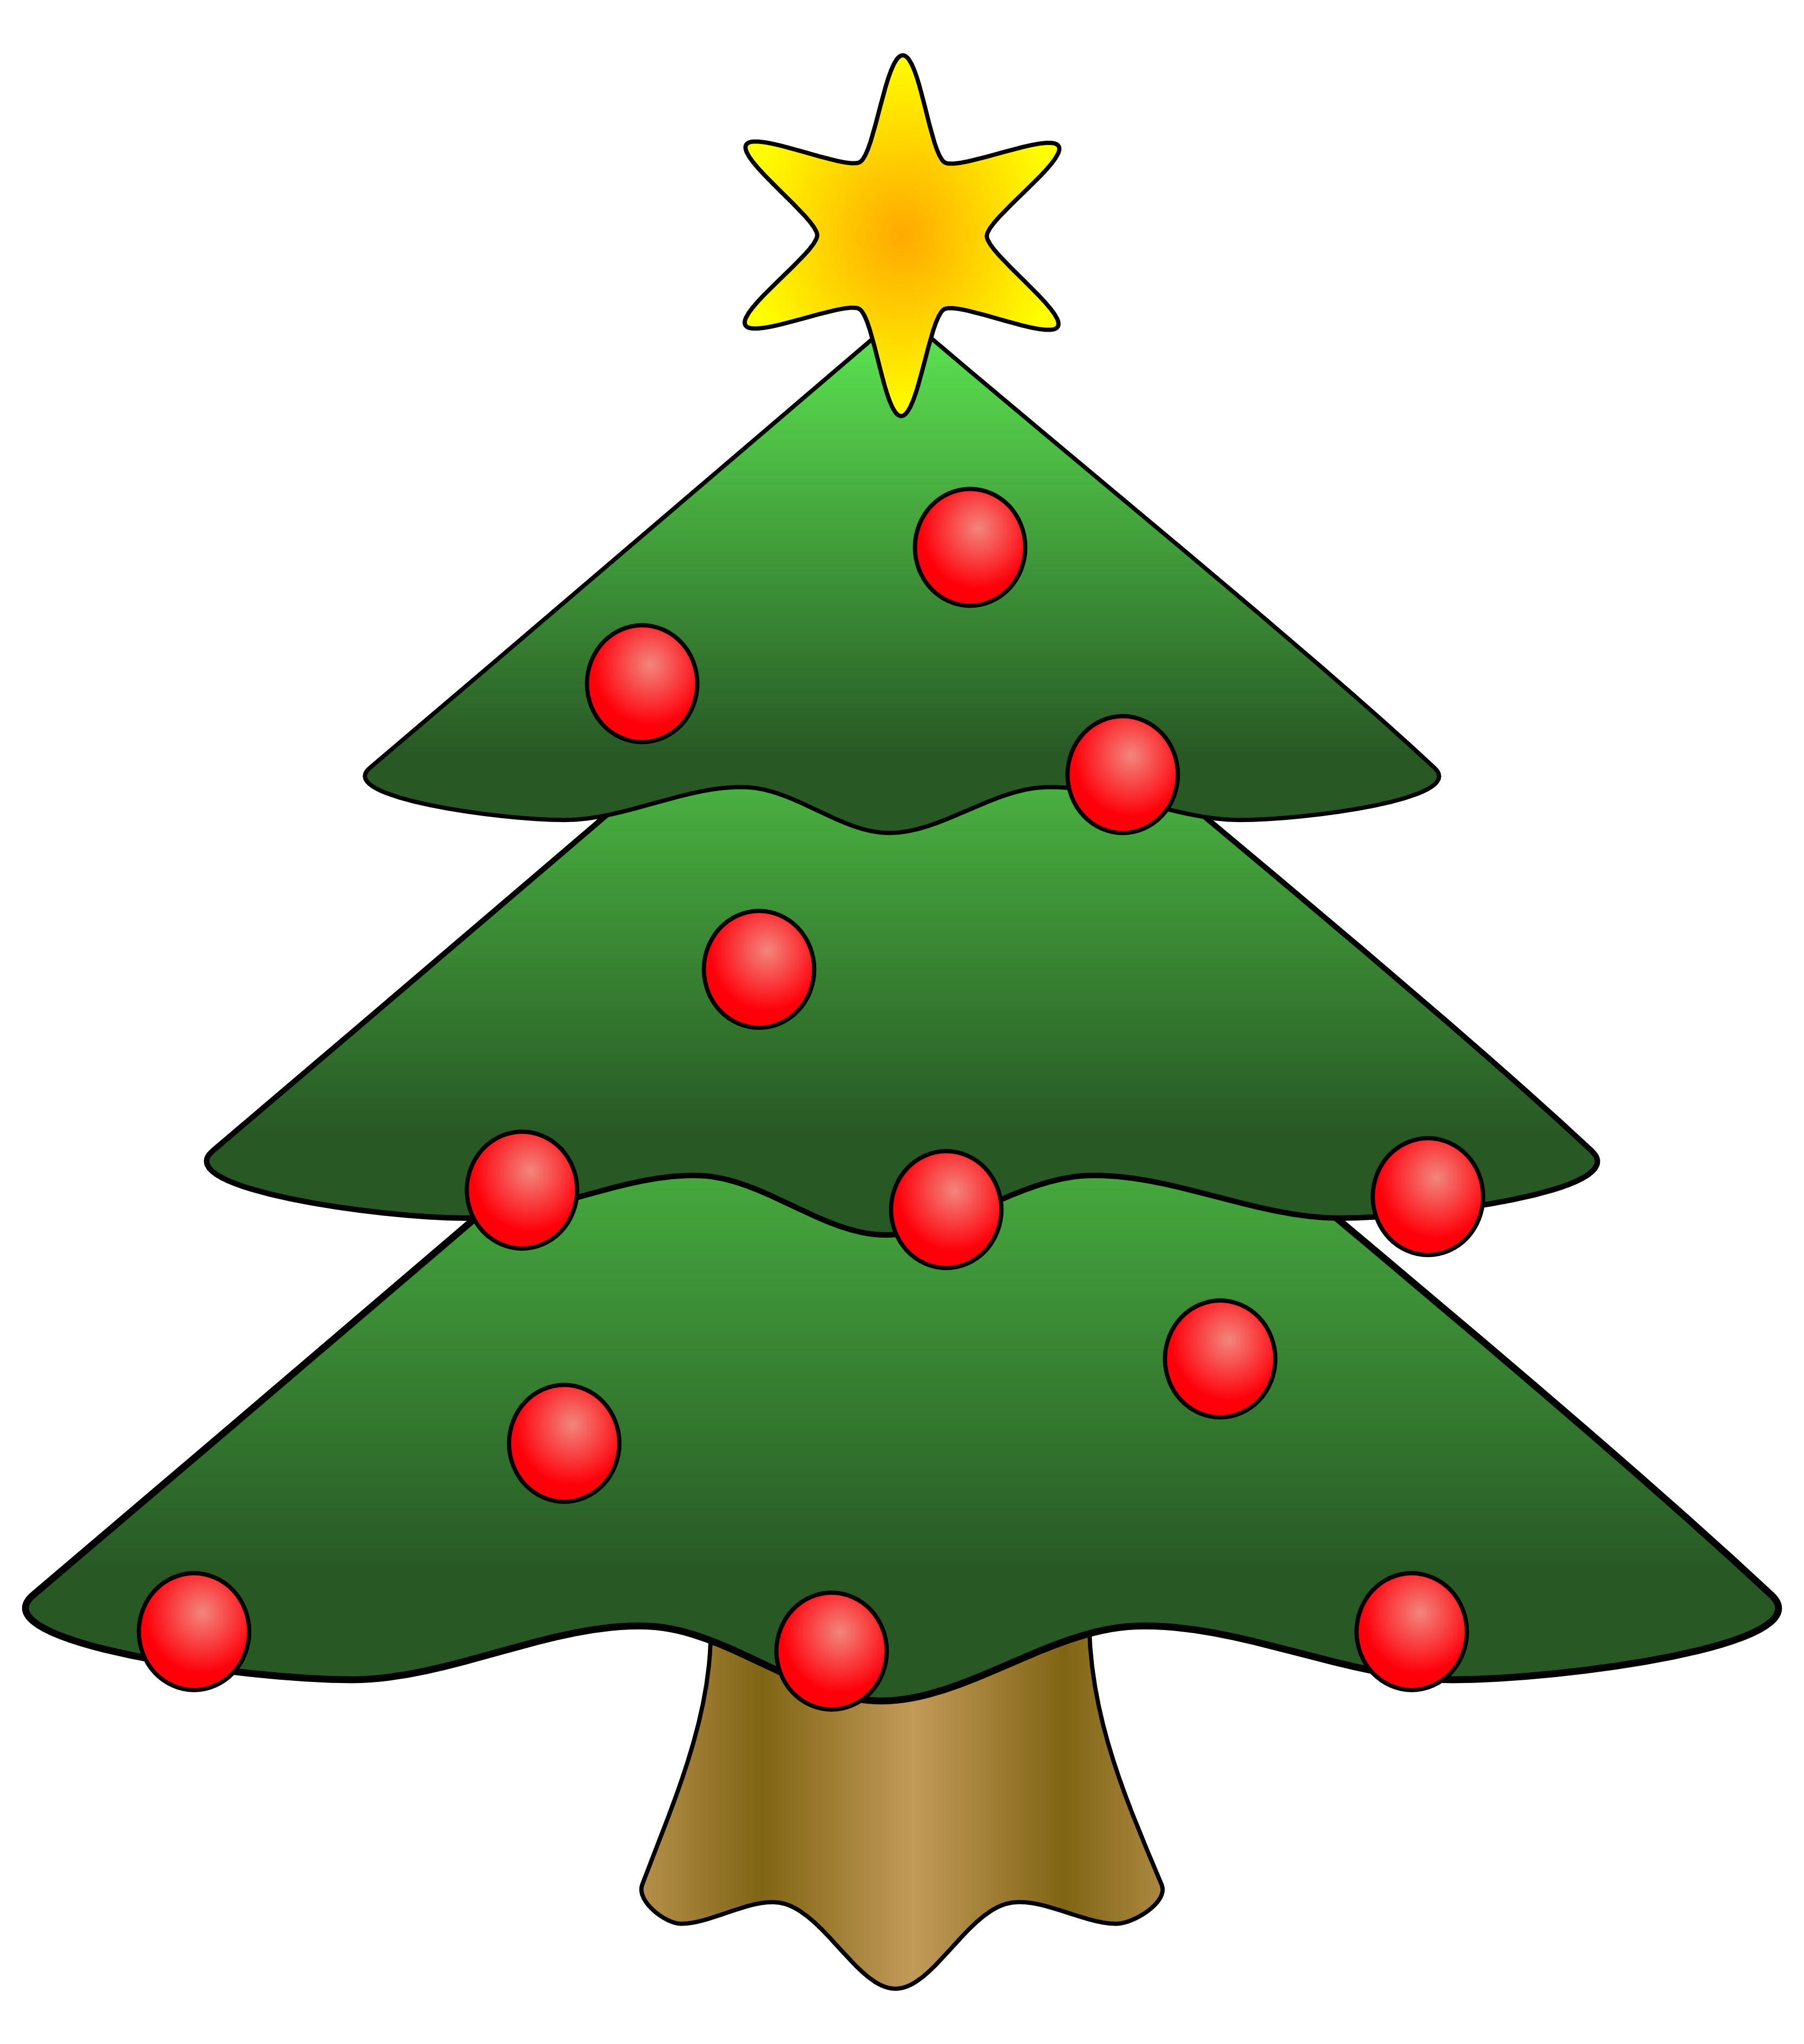 Christmas Tree clipart xmas tree Clipart%20christmas%20tree%20with%20presents Free Clip Art Images